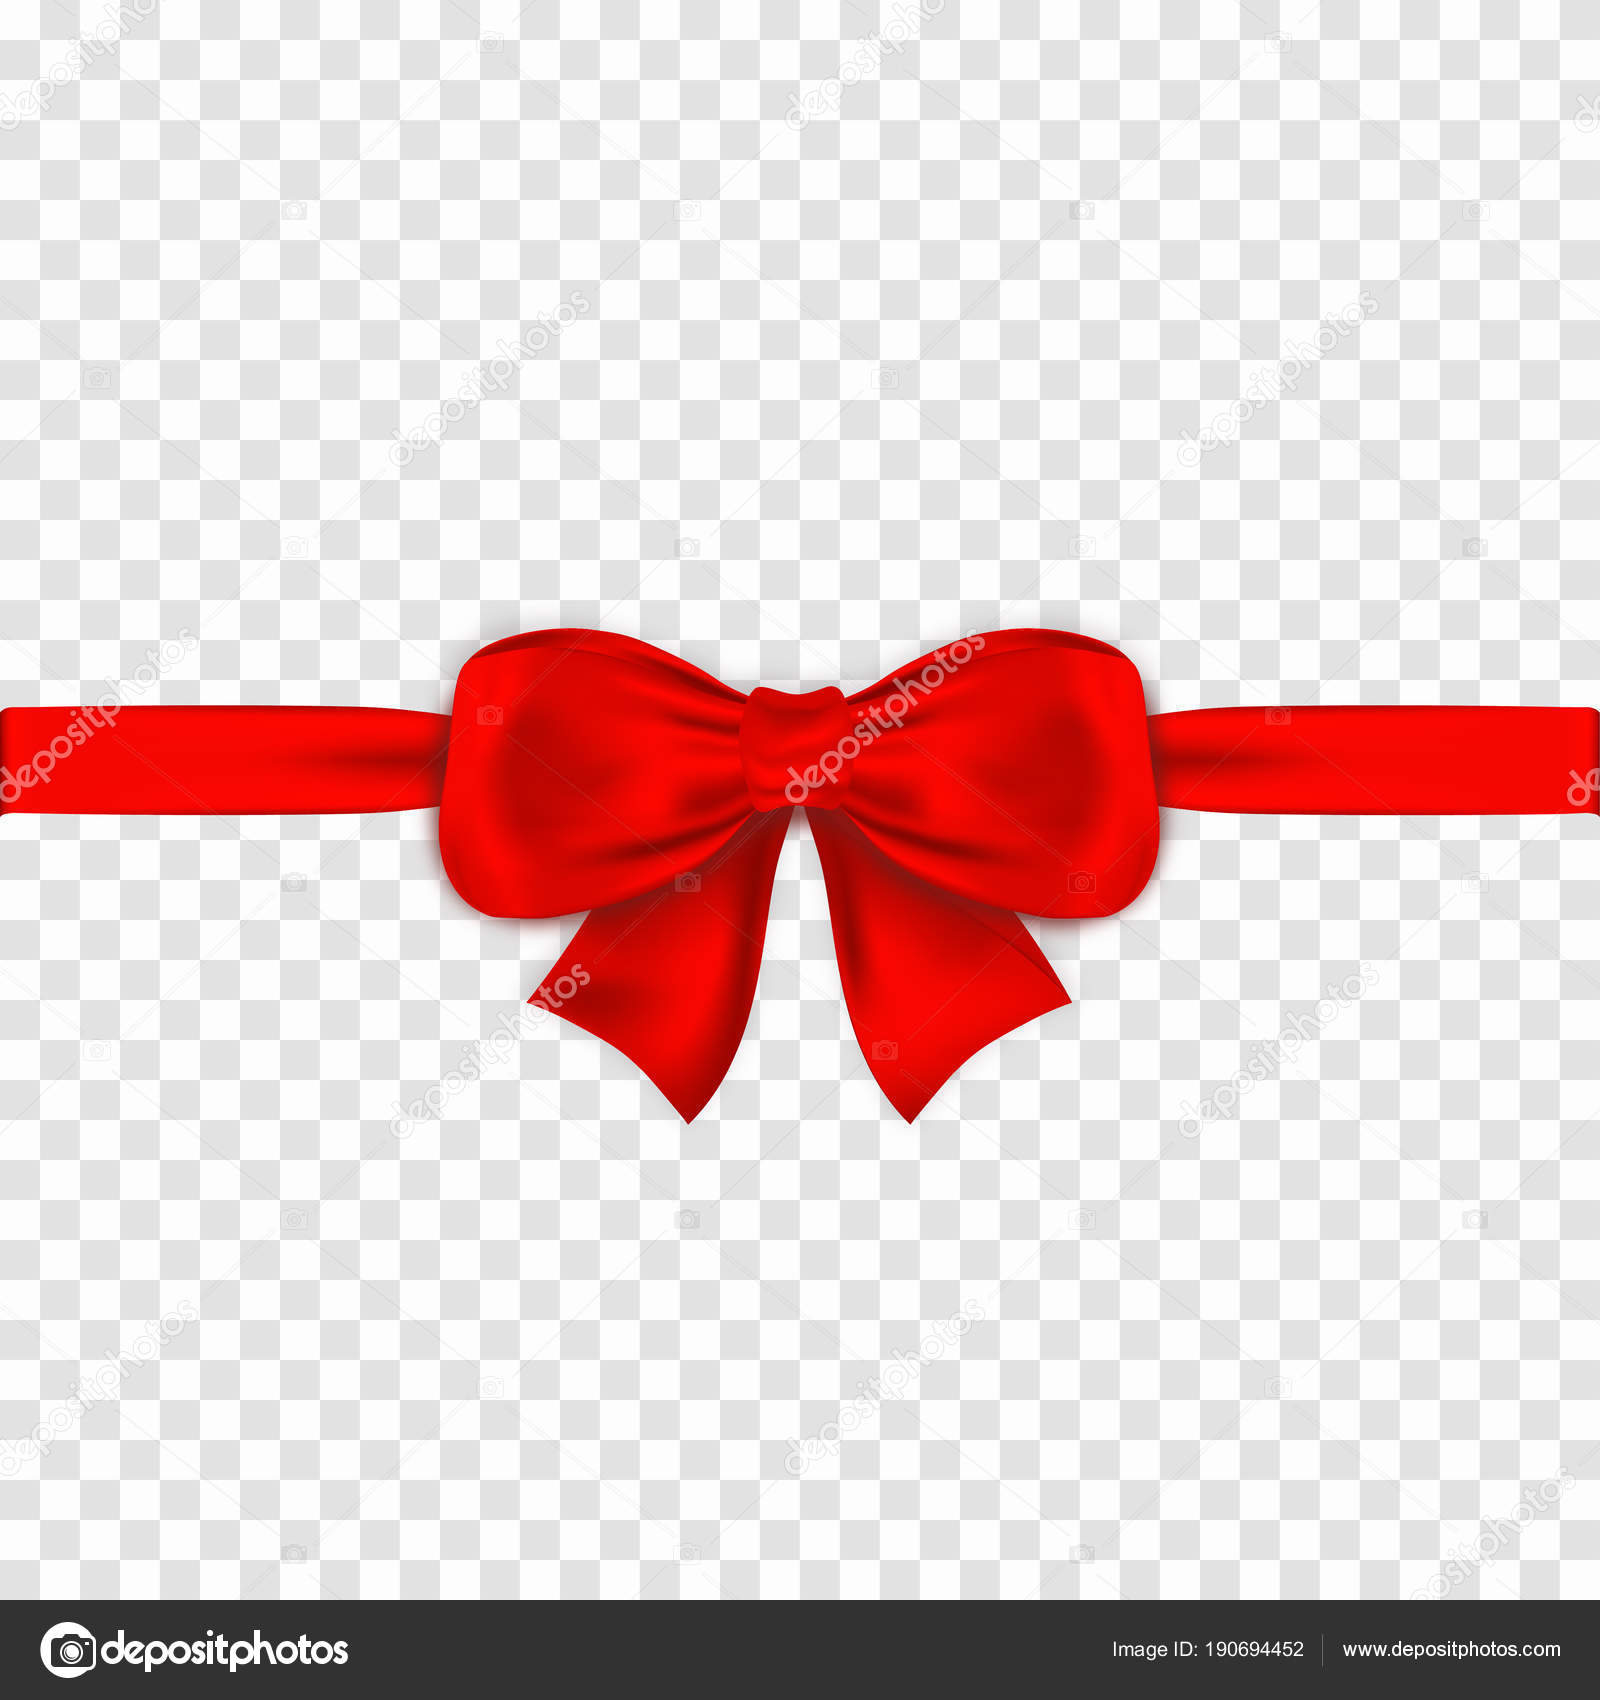 Red bow with ribbons on transparent background. Realistic satin gift ...